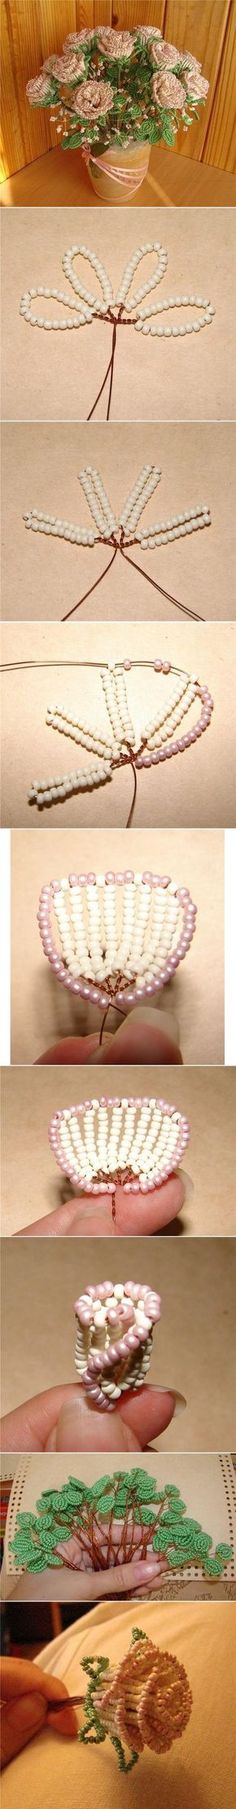 DIY Bead Roses Bouquet DIY Projects / UsefulDIY.com